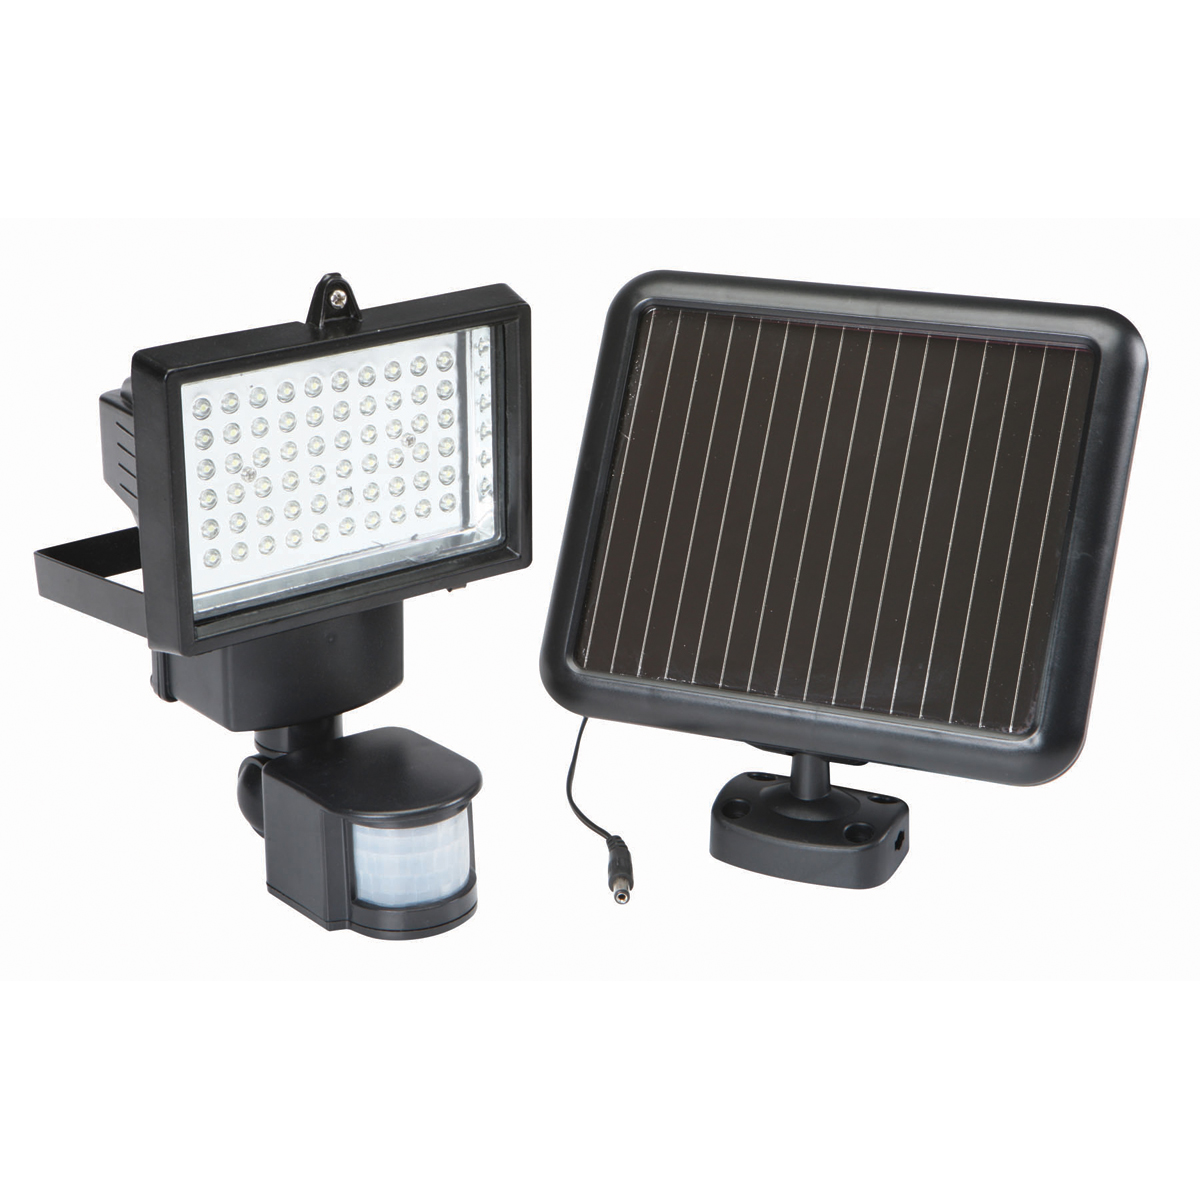 60 led solar security light. Black Bedroom Furniture Sets. Home Design Ideas